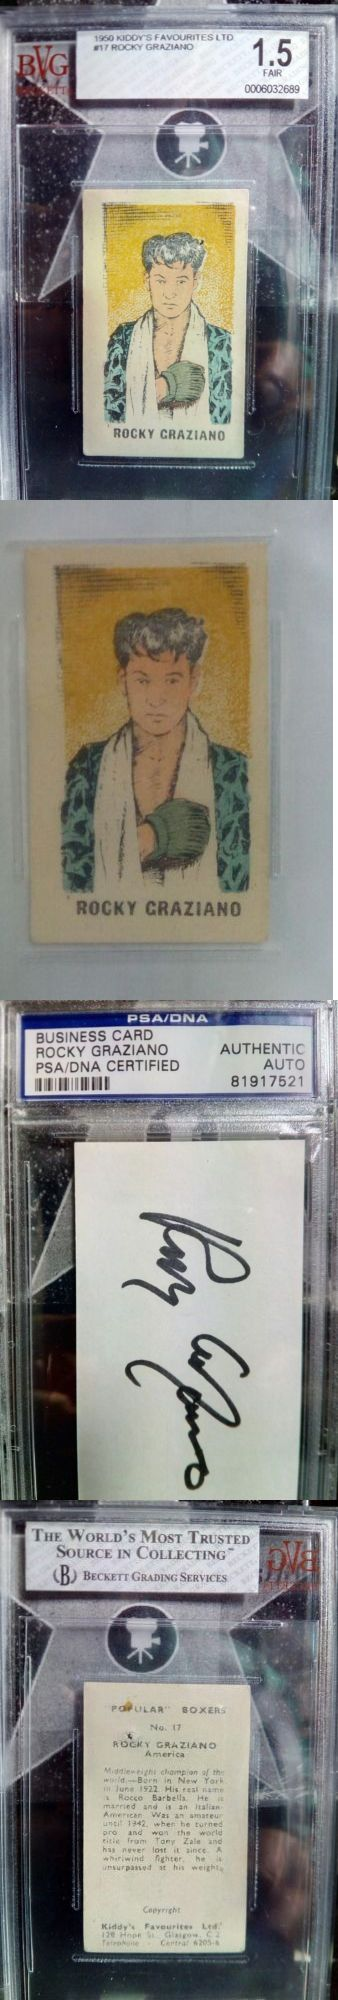 Boxing Cards 37795: 1950 Kiddy S Cummings Exhibit Rocky Graziano Rookie Cards Bvg Psa Autograph -> BUY IT NOW ONLY: $3395.75 on eBay!